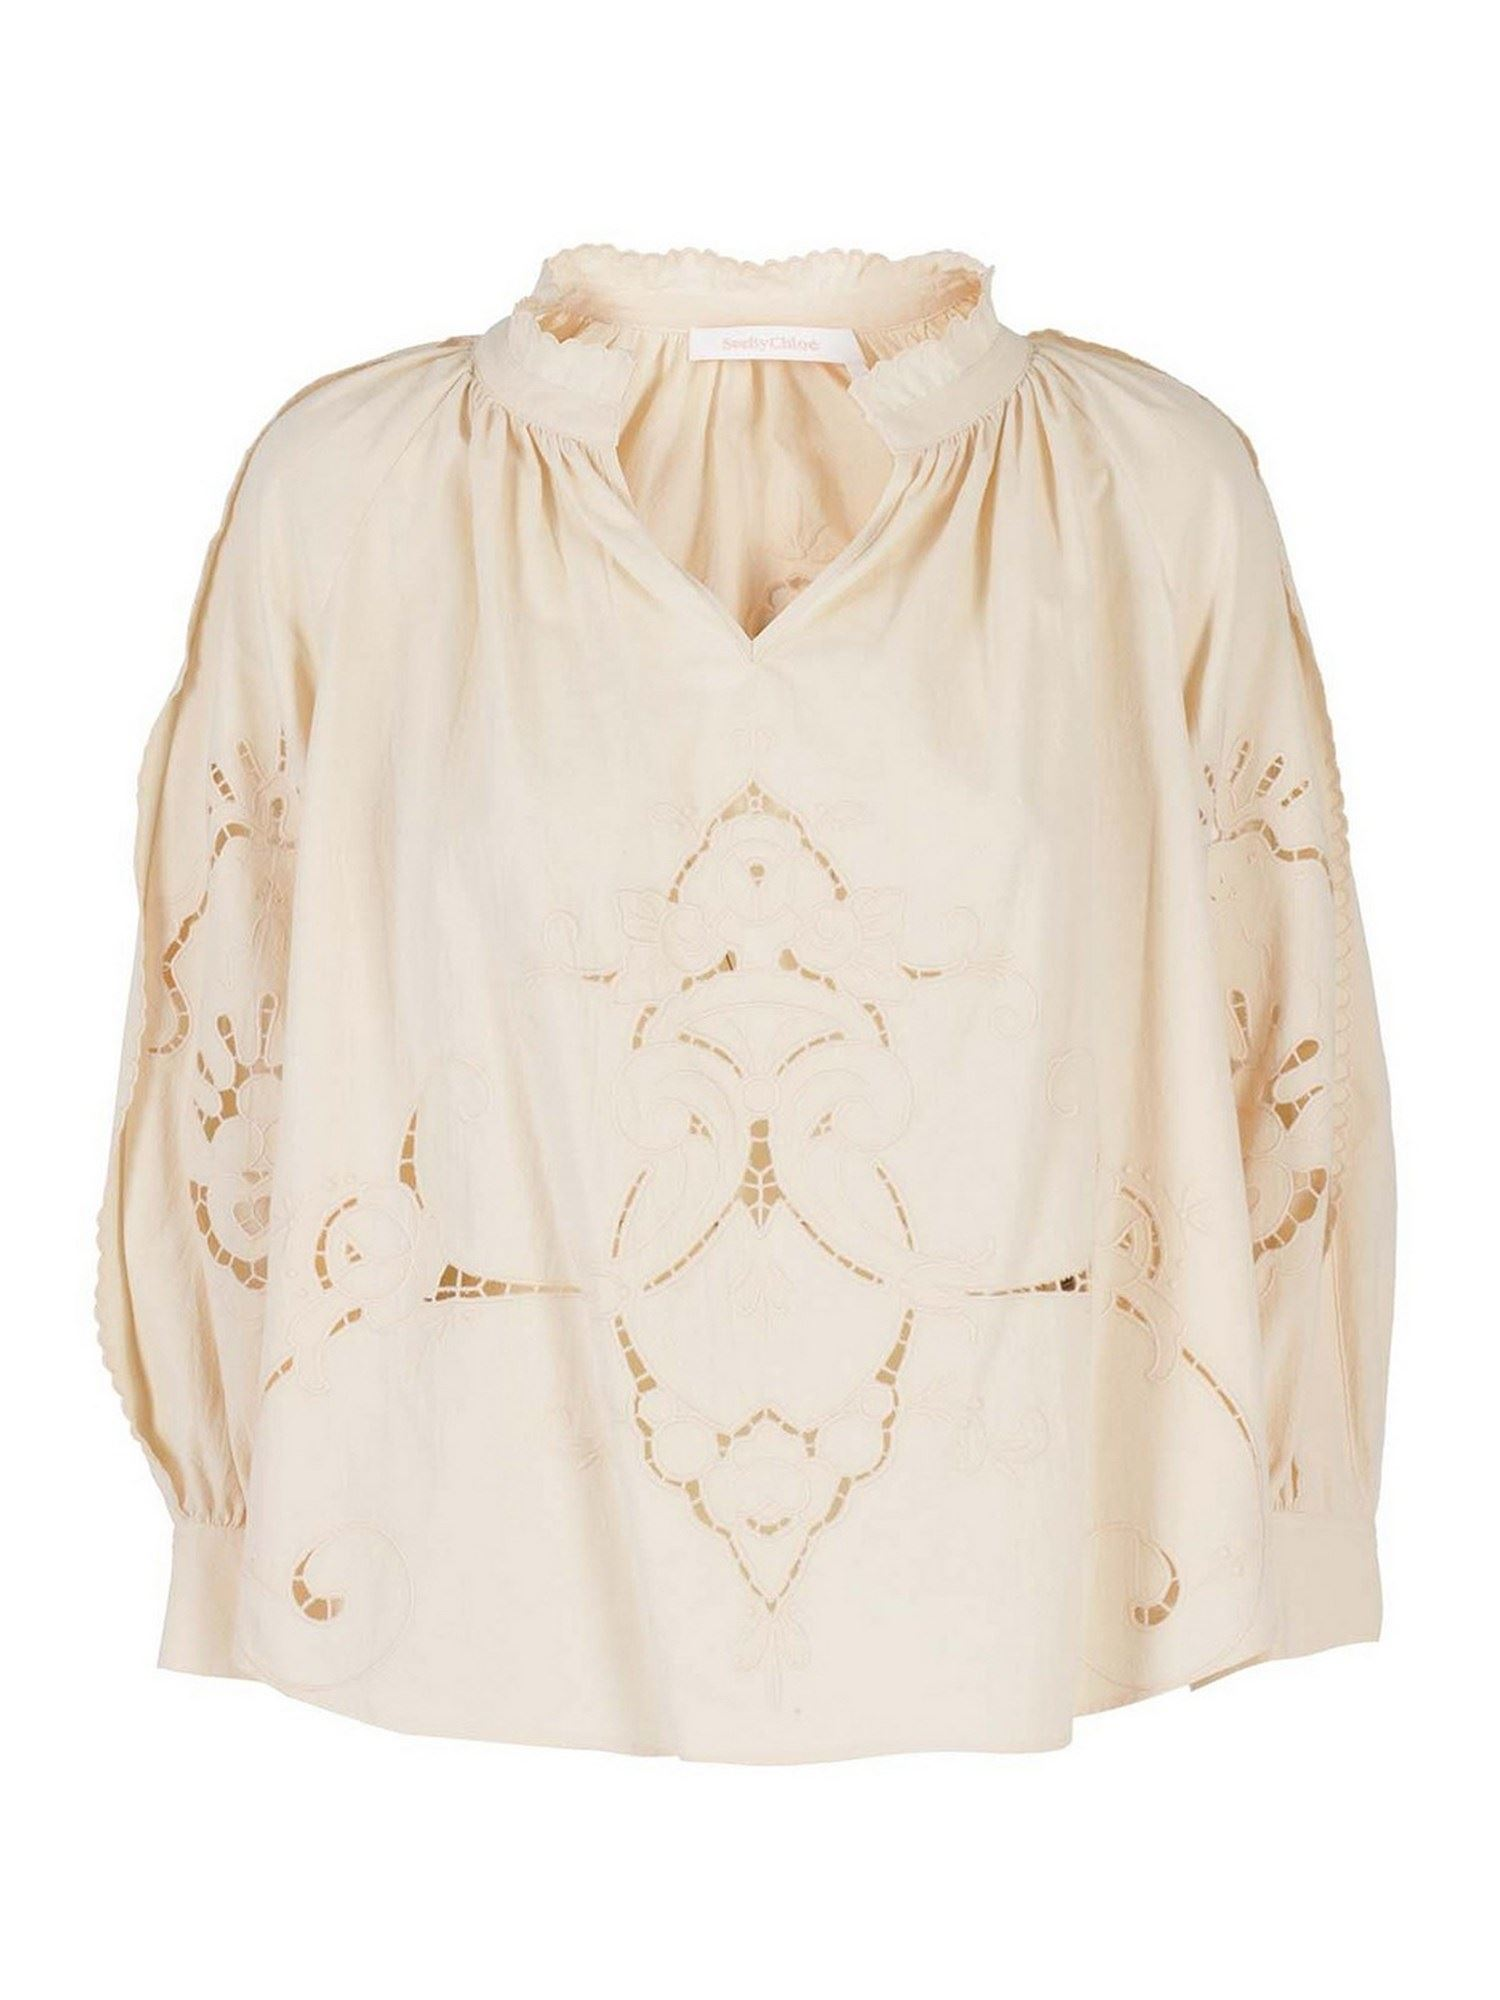 See By Chloé LINEN BLOUSE IN CREAM COLOR